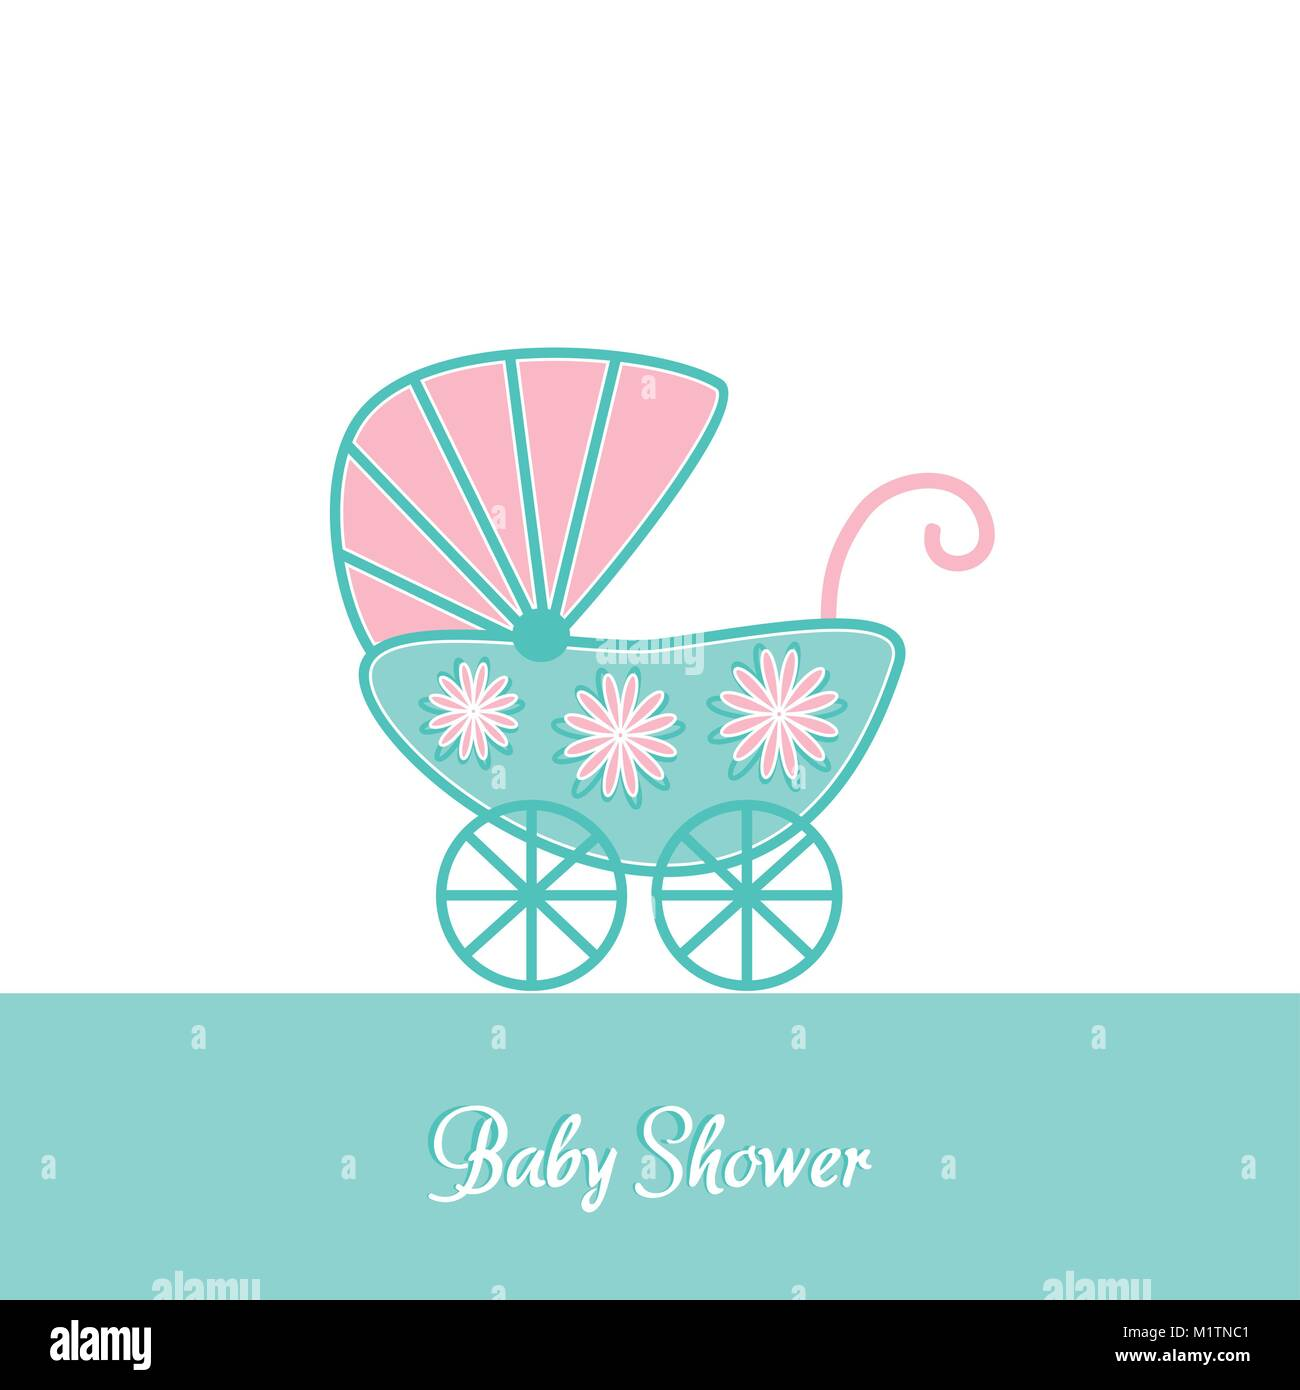 Baby shower vintage invitation card template with stroller stock baby shower vintage invitation card template with stroller stopboris Image collections